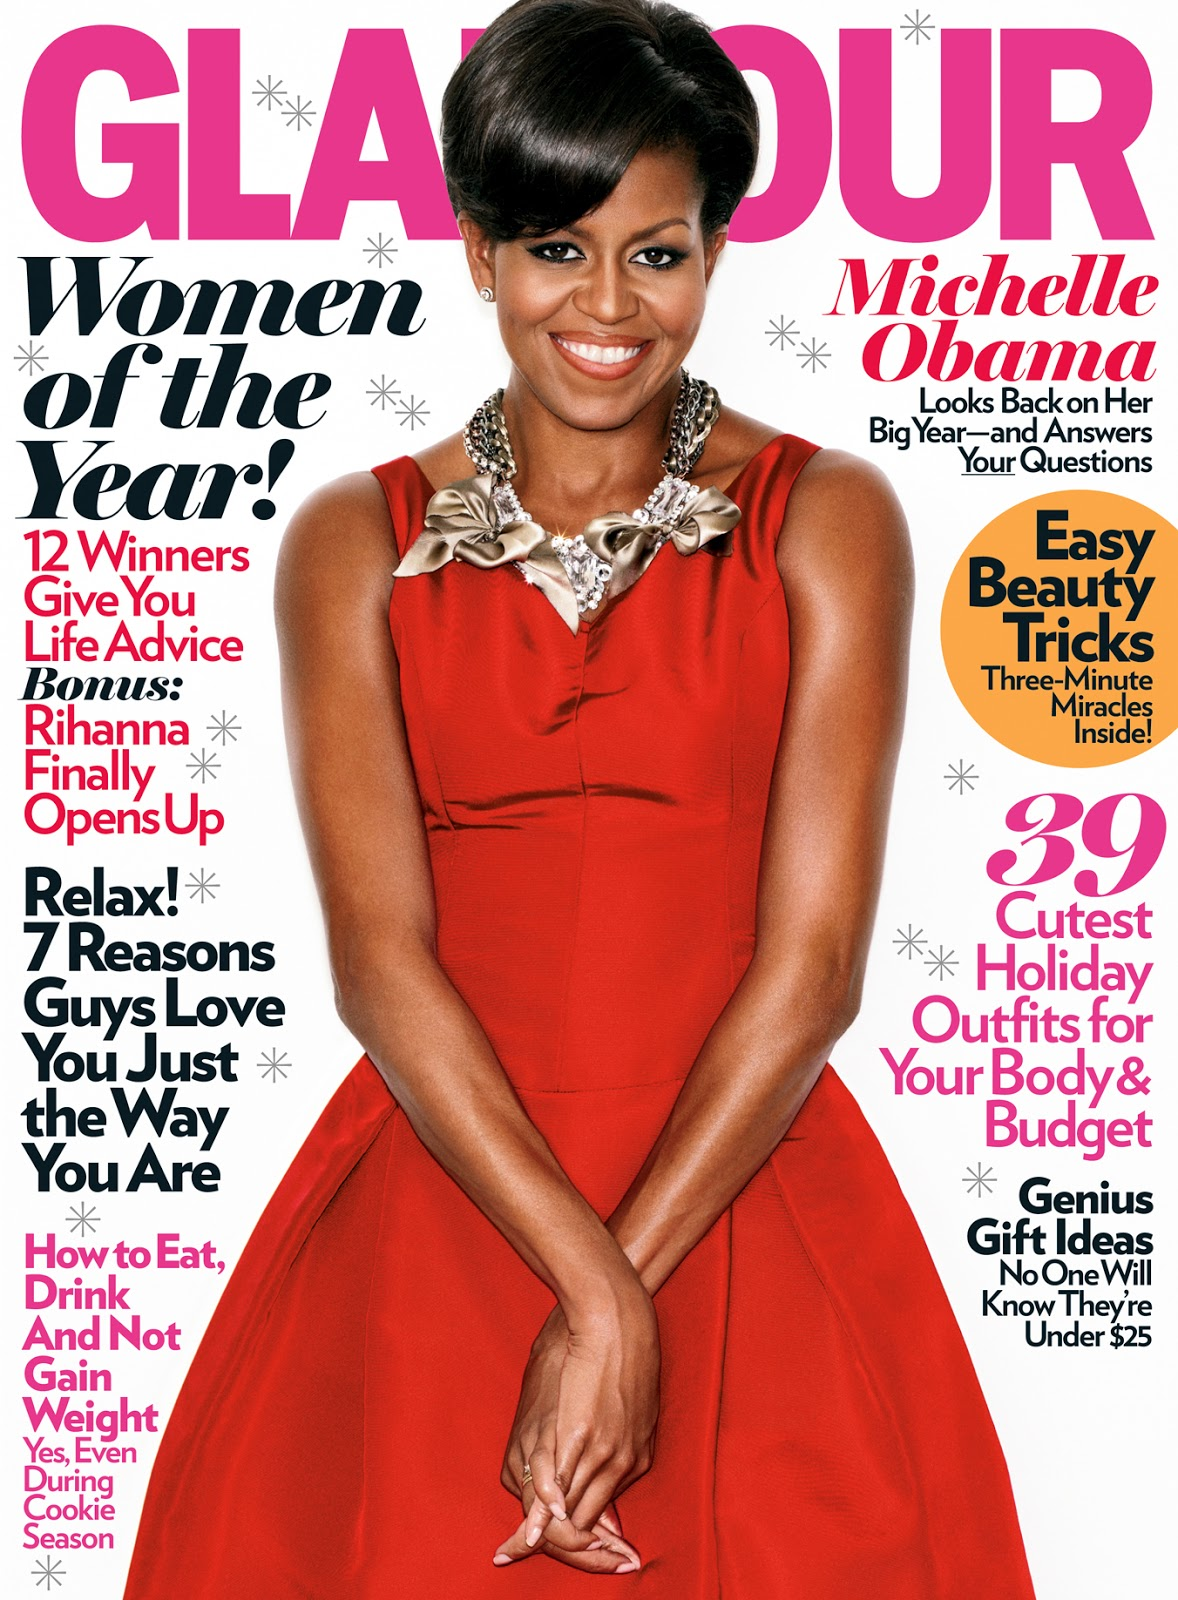 Editorial Glamour Makeup Professional Makeup Artist: Michelle Obama's Awesome Style